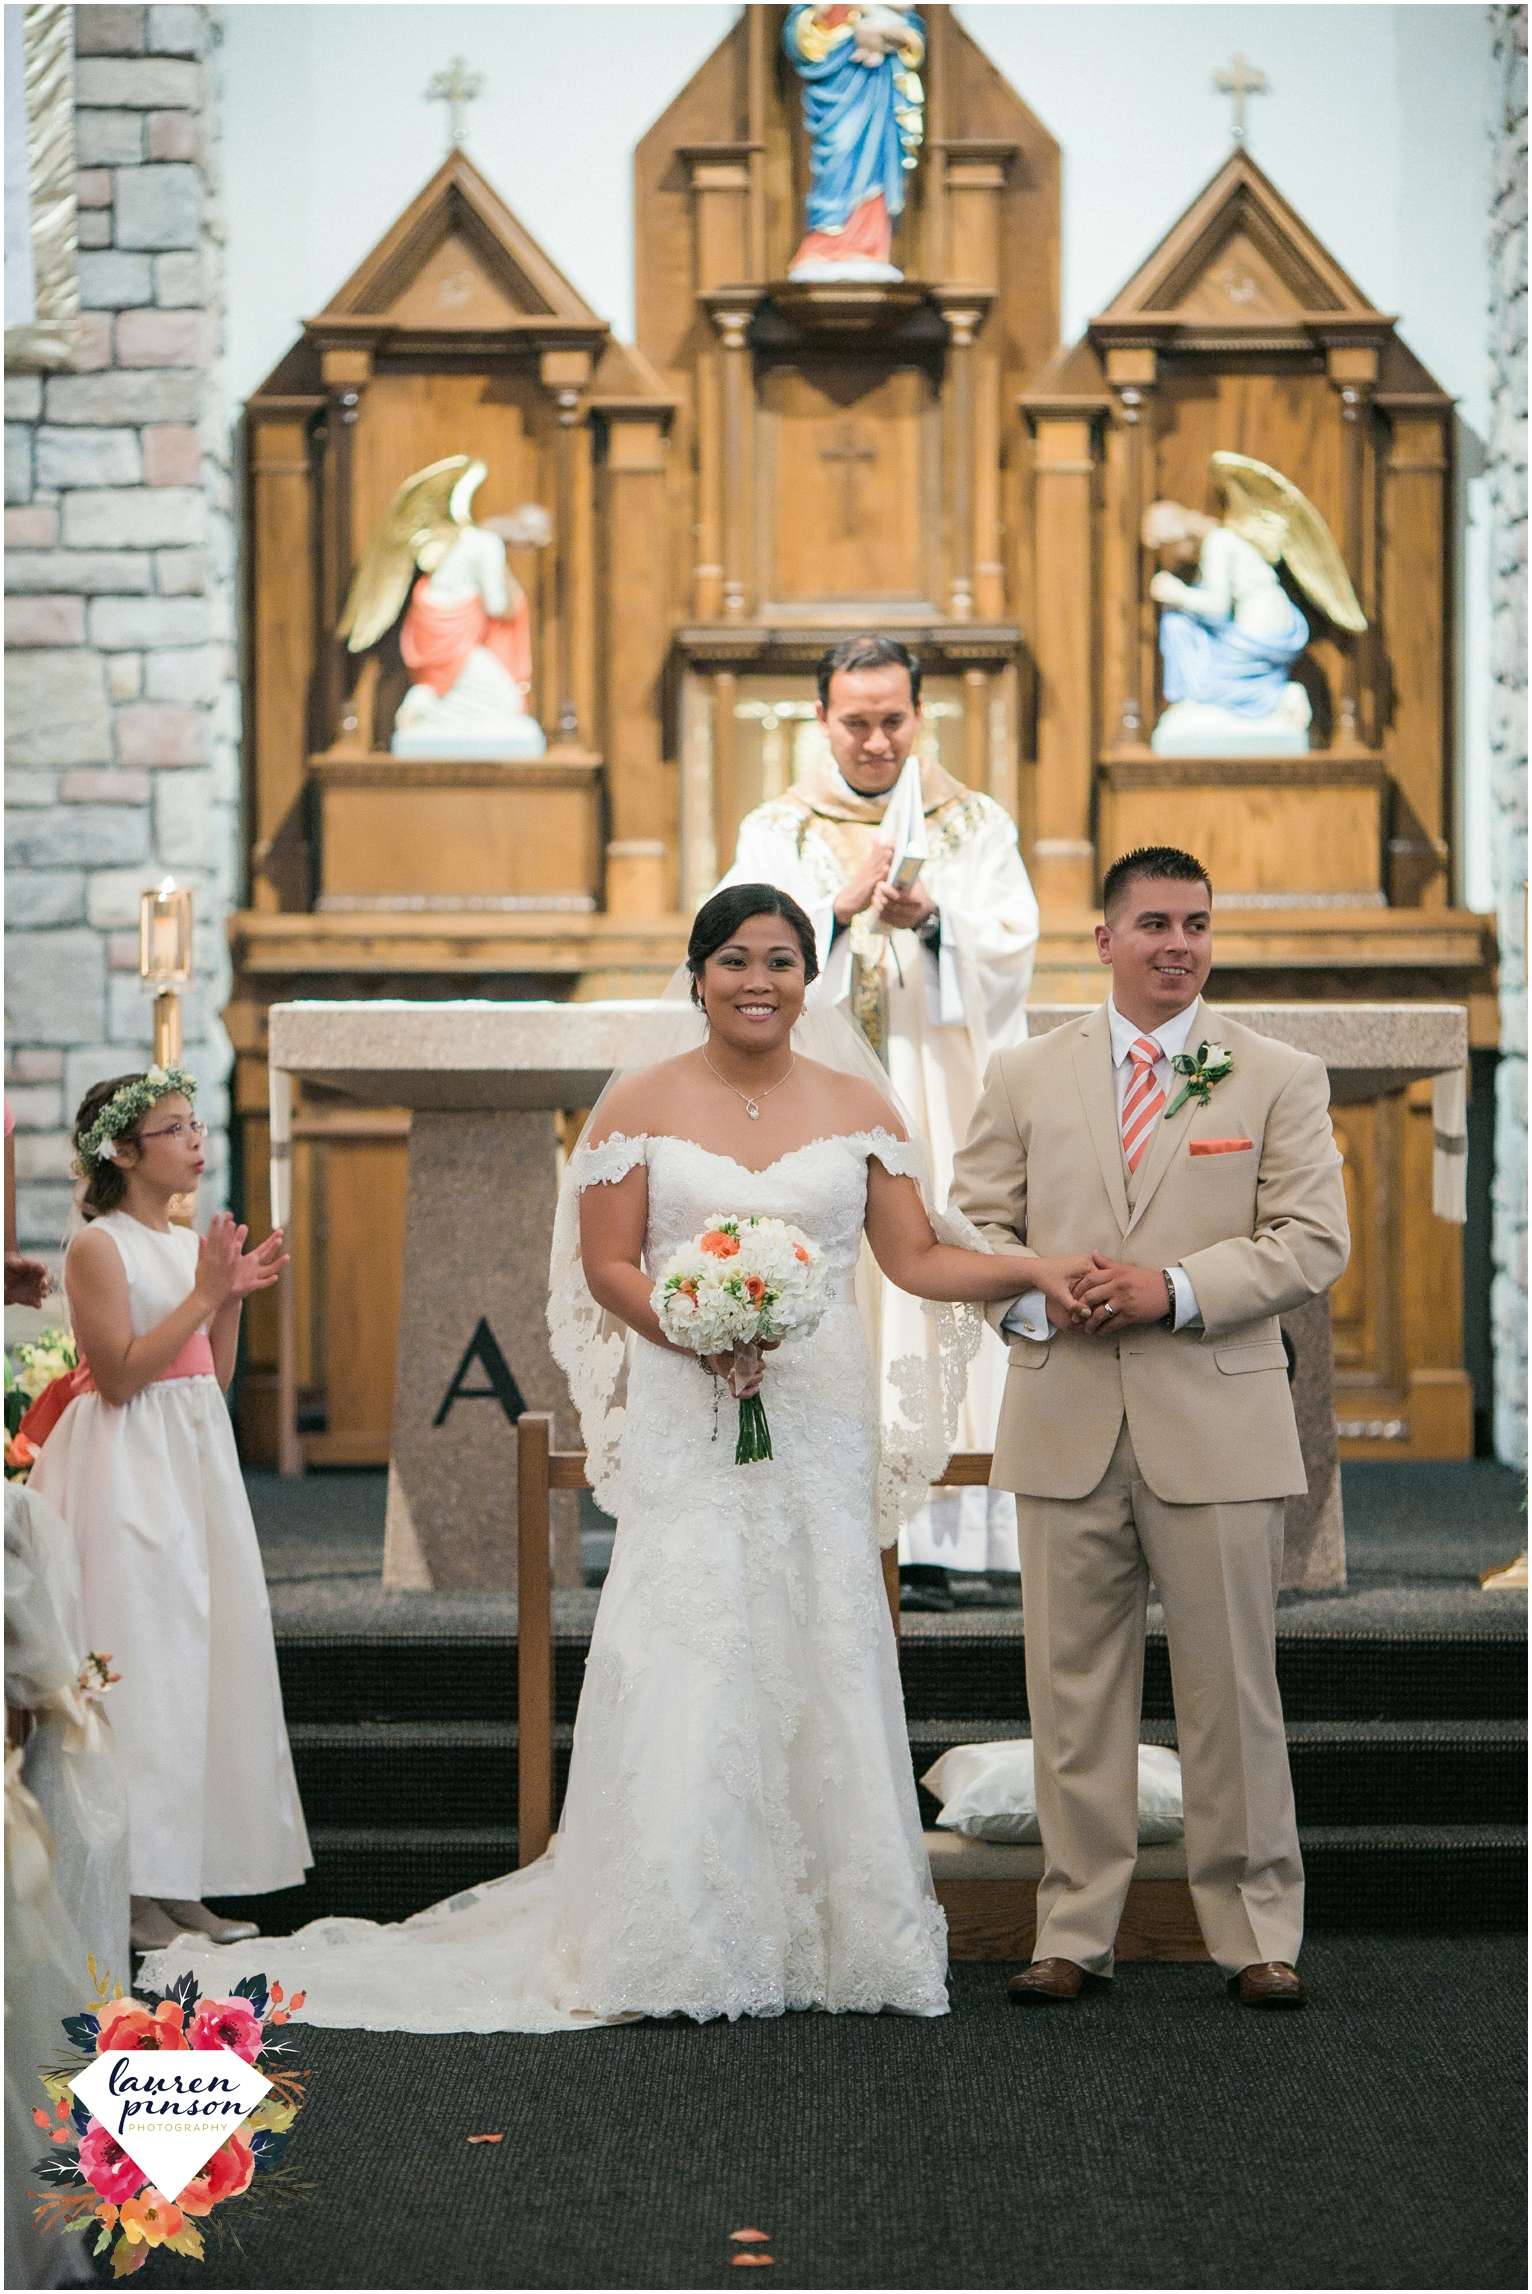 wichita-falls-wedding-photographer-OUR-Lady-queen-of-peace-catholic-wedding-the-forum-photography_0827.jpg